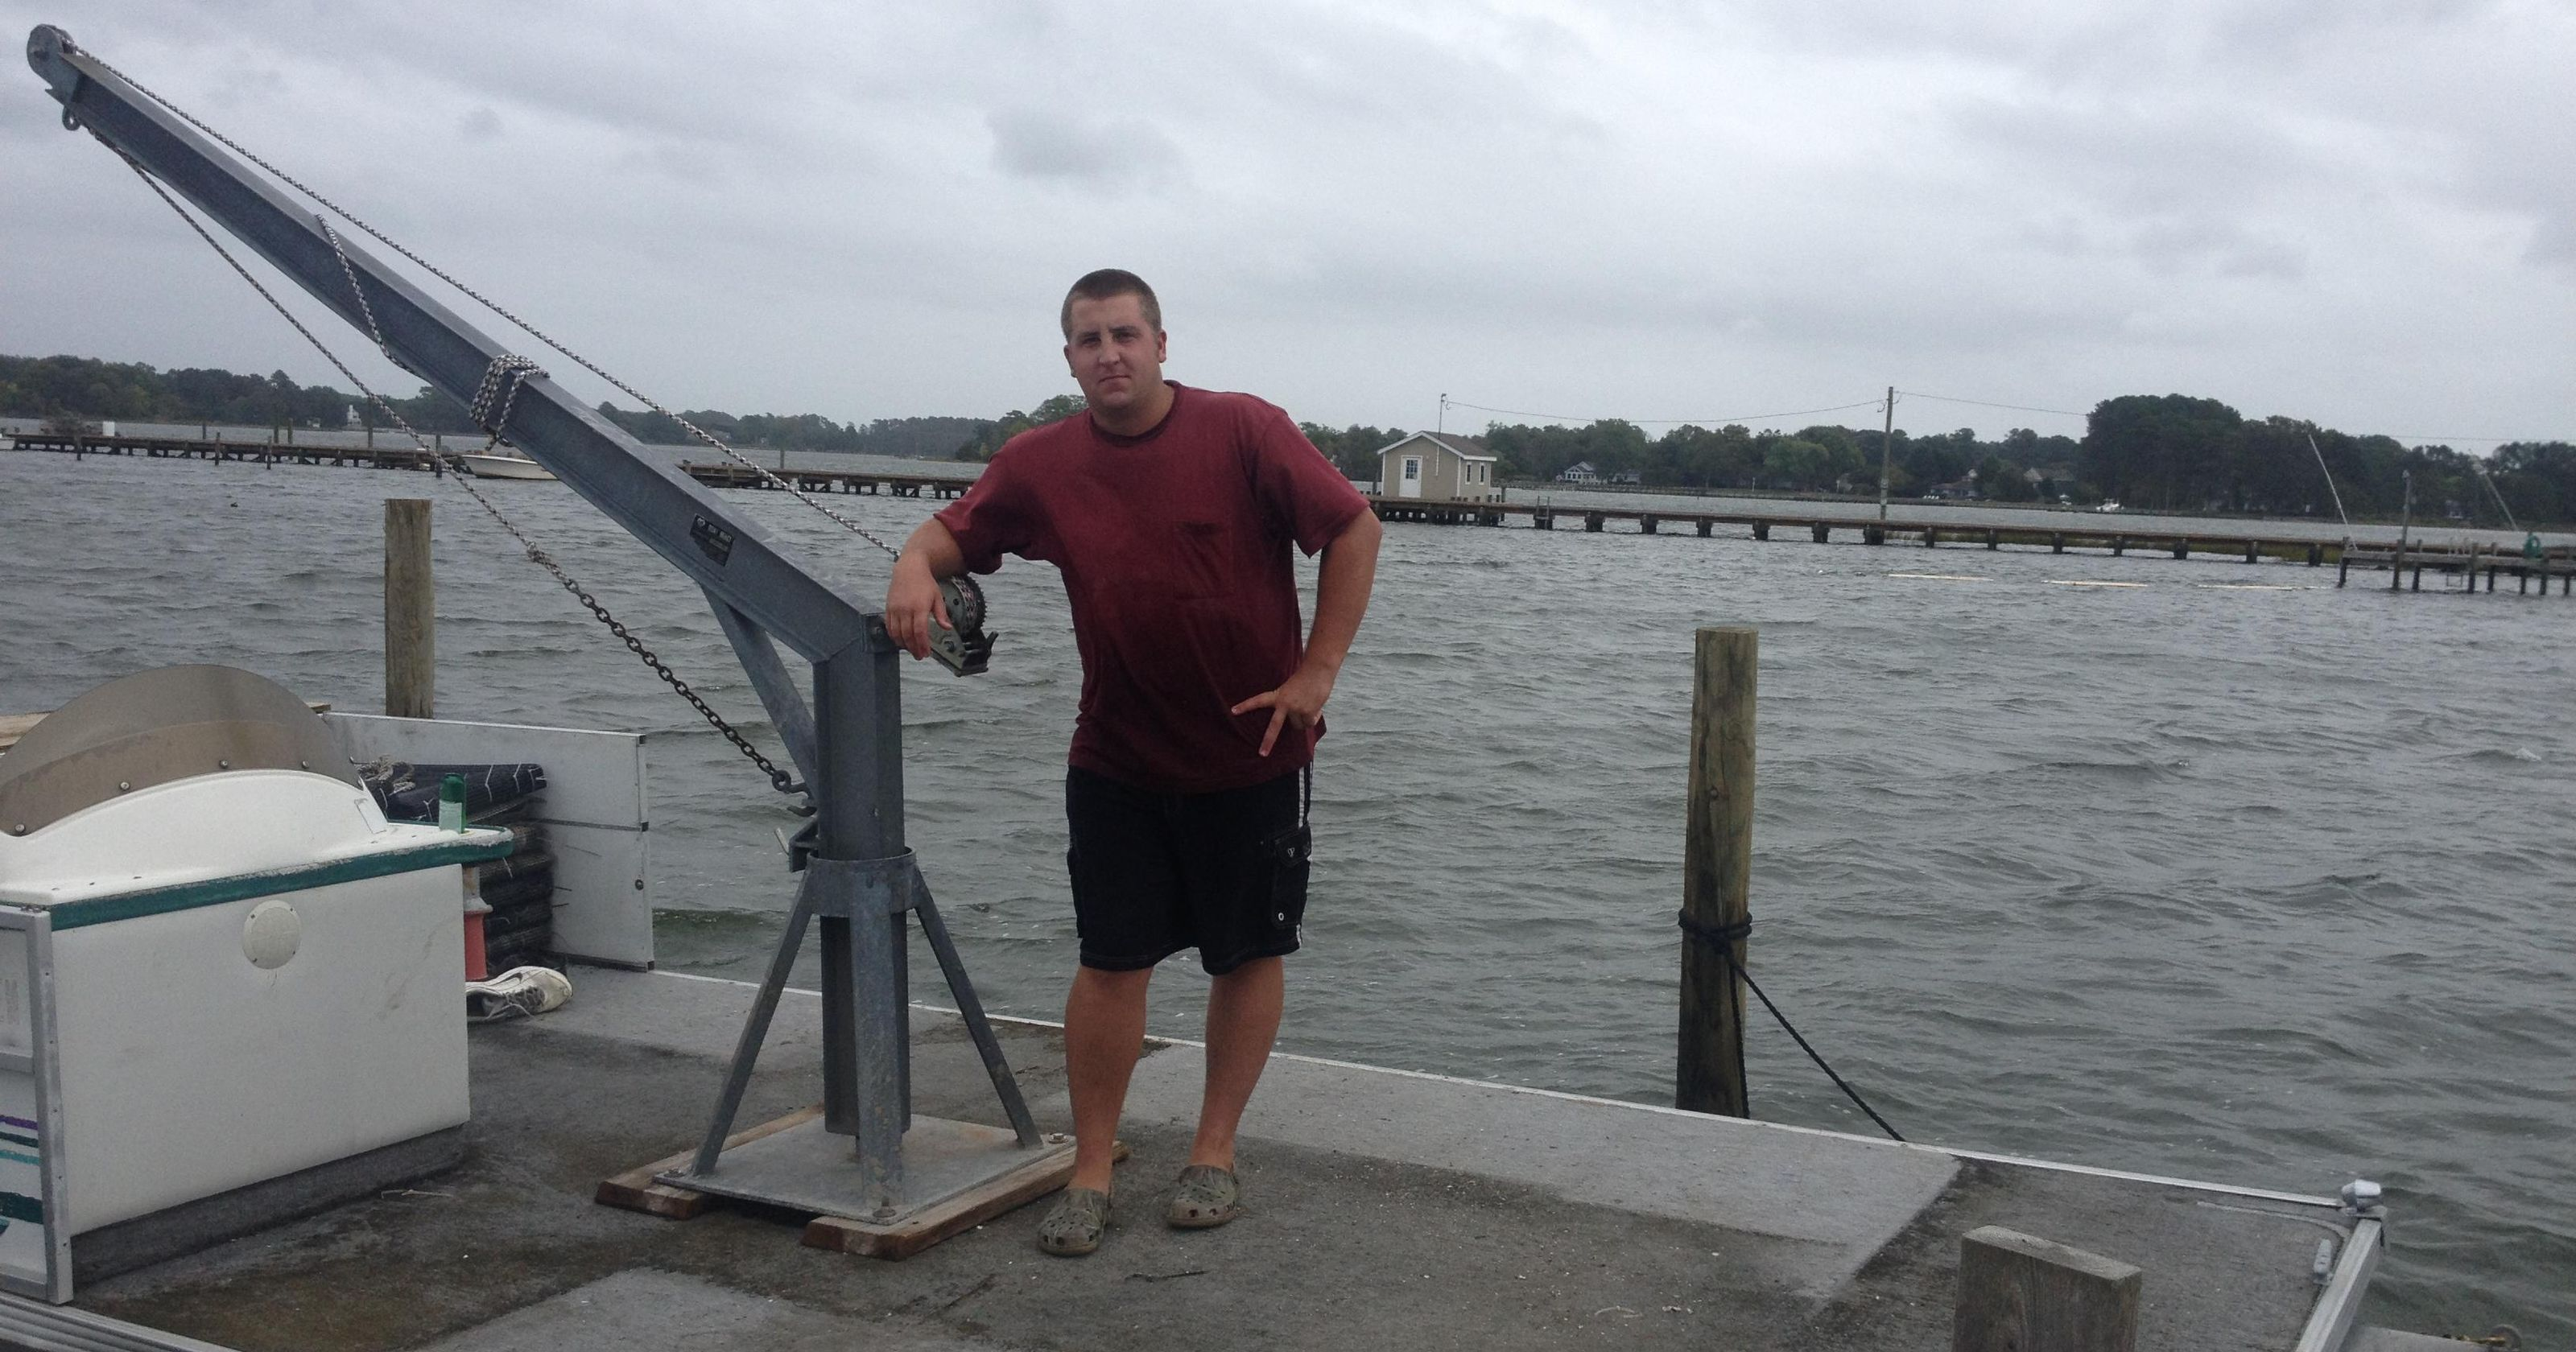 after graduating from jmu daniel mears returns to start after graduating from jmu daniel mears 21 returns to start aquaculture business in